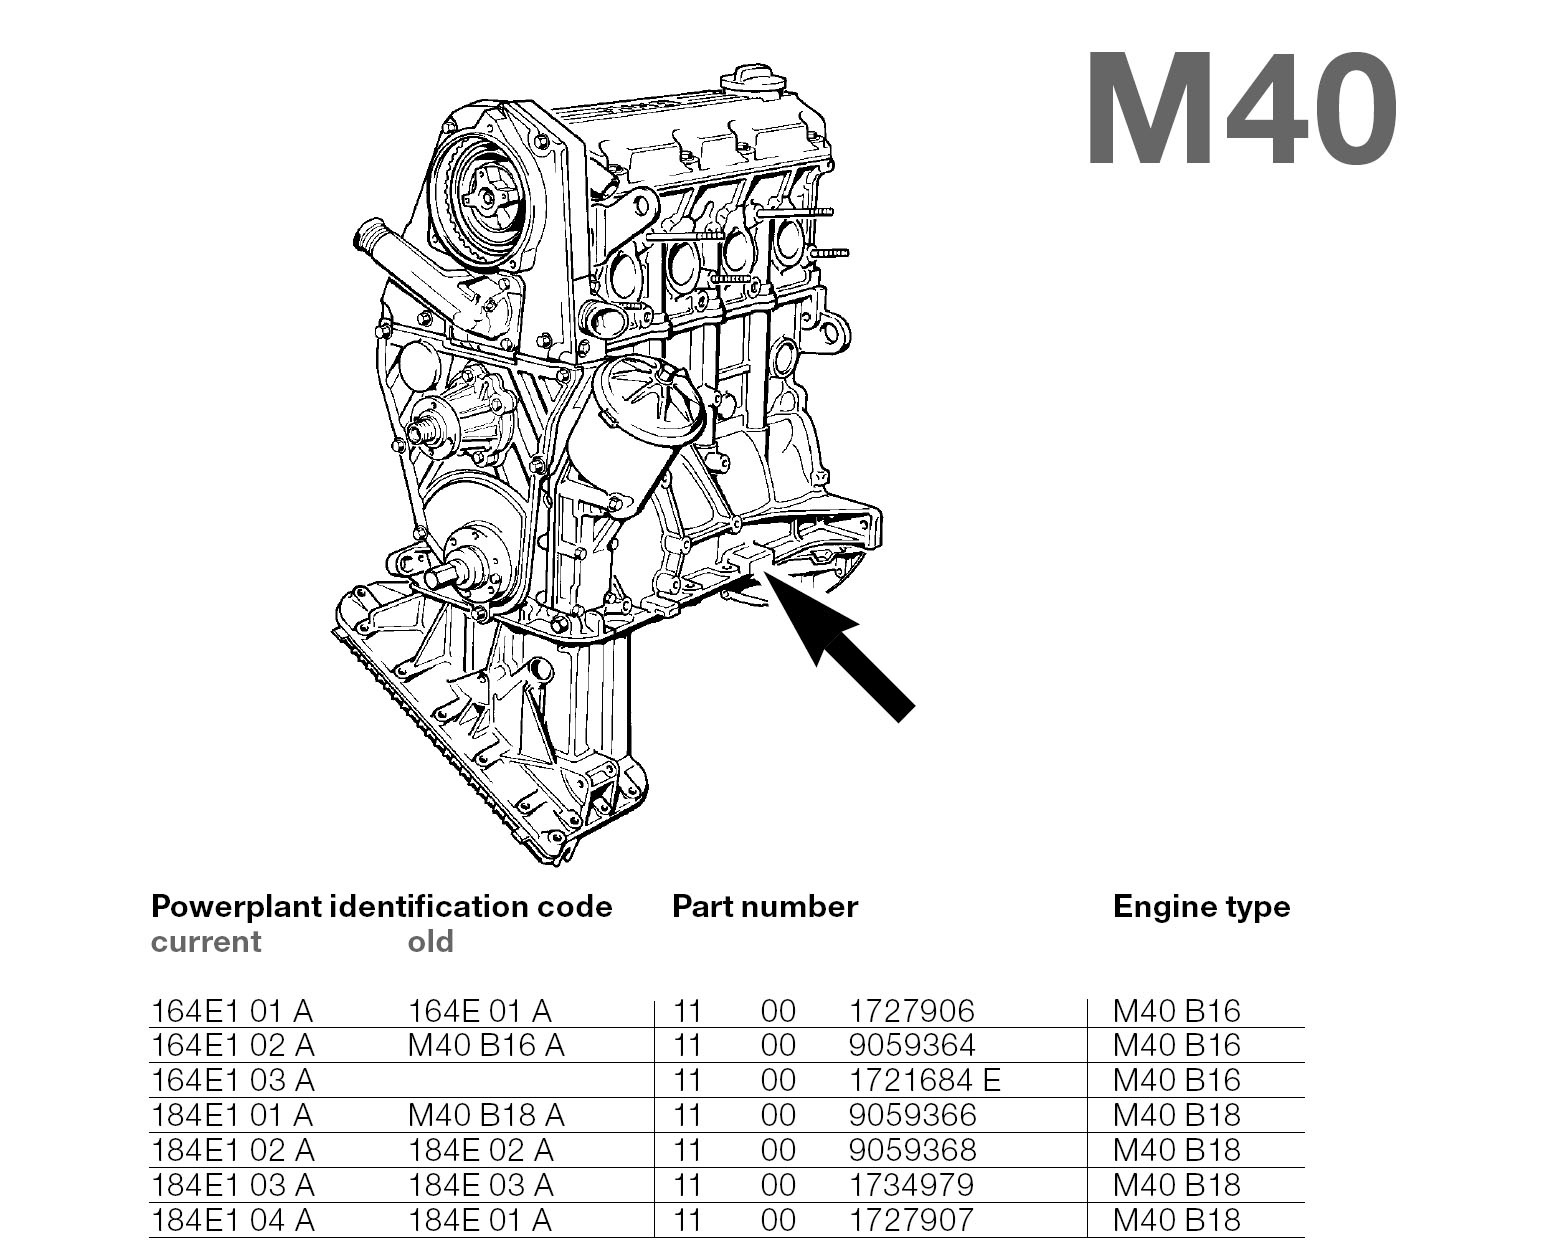 BMW M40 Engine Codes